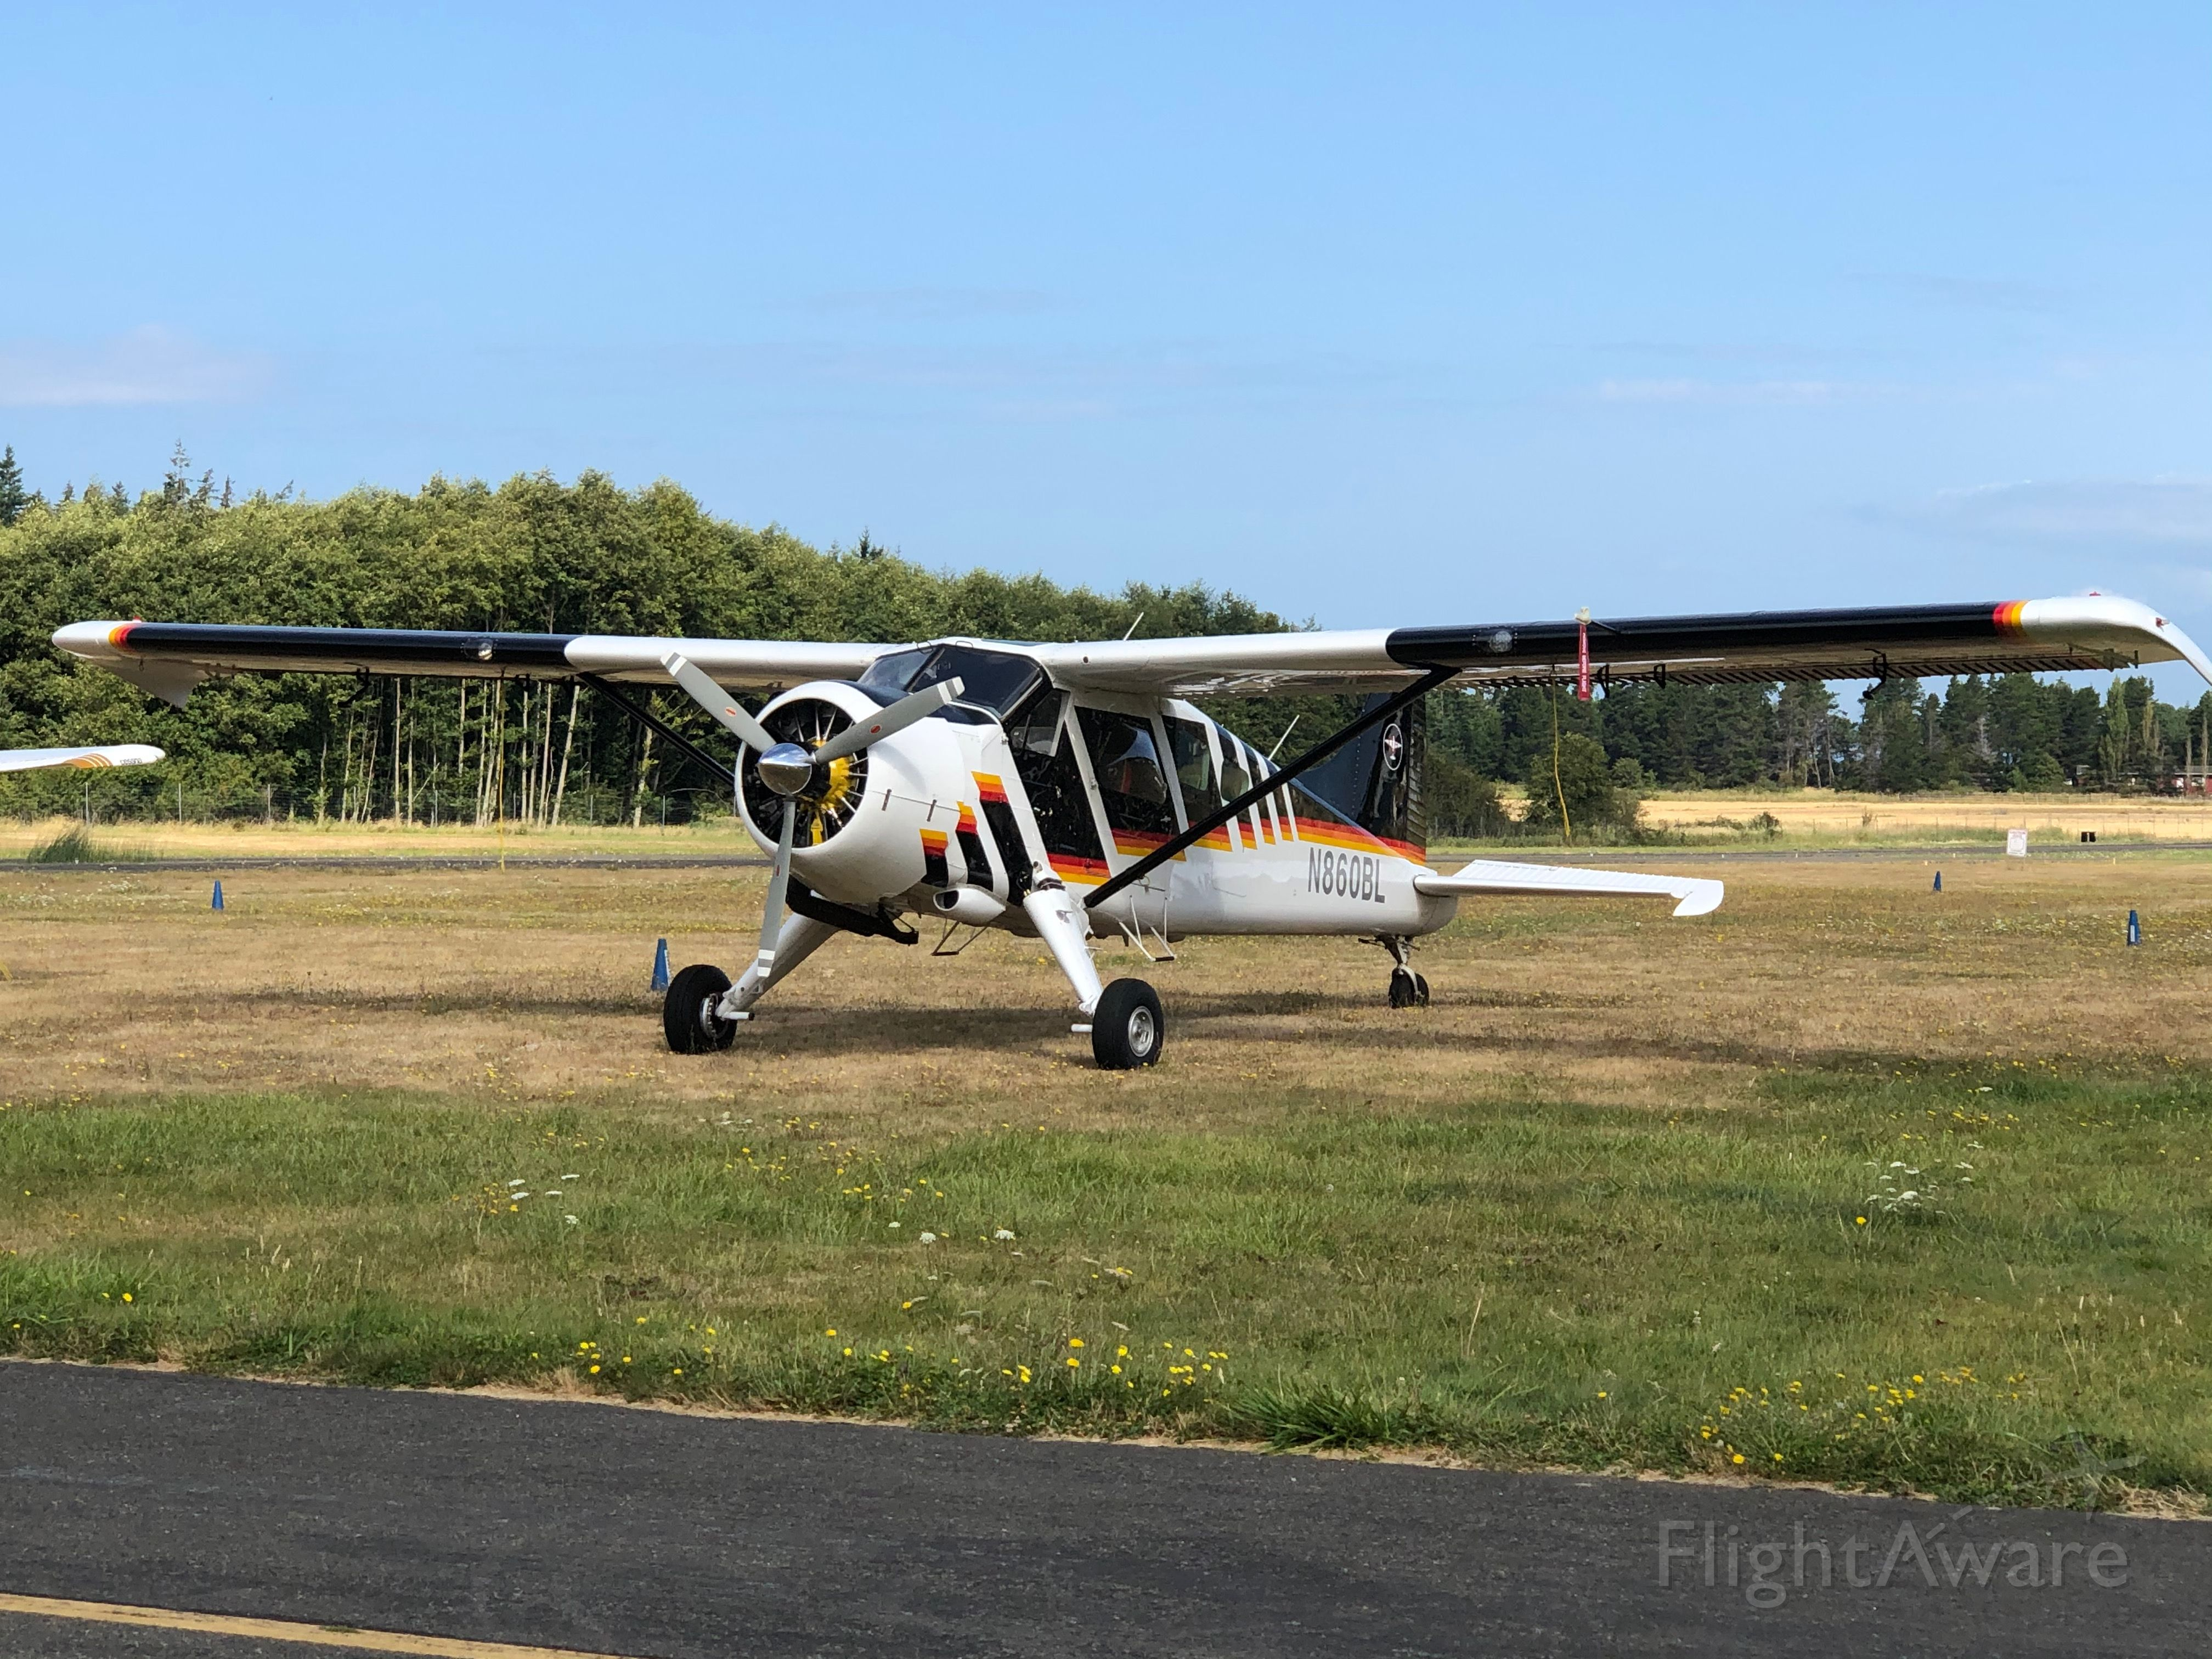 De Havilland Canada DHC-2 Mk1 Beaver (N860BL) - Spotted this beautiful 67-year-old Dehavilland Beaver at the Orcas Island airport. Spent many hours in these aircraft on Kodiak Island with both wheels and floats. As durable as a DC3.